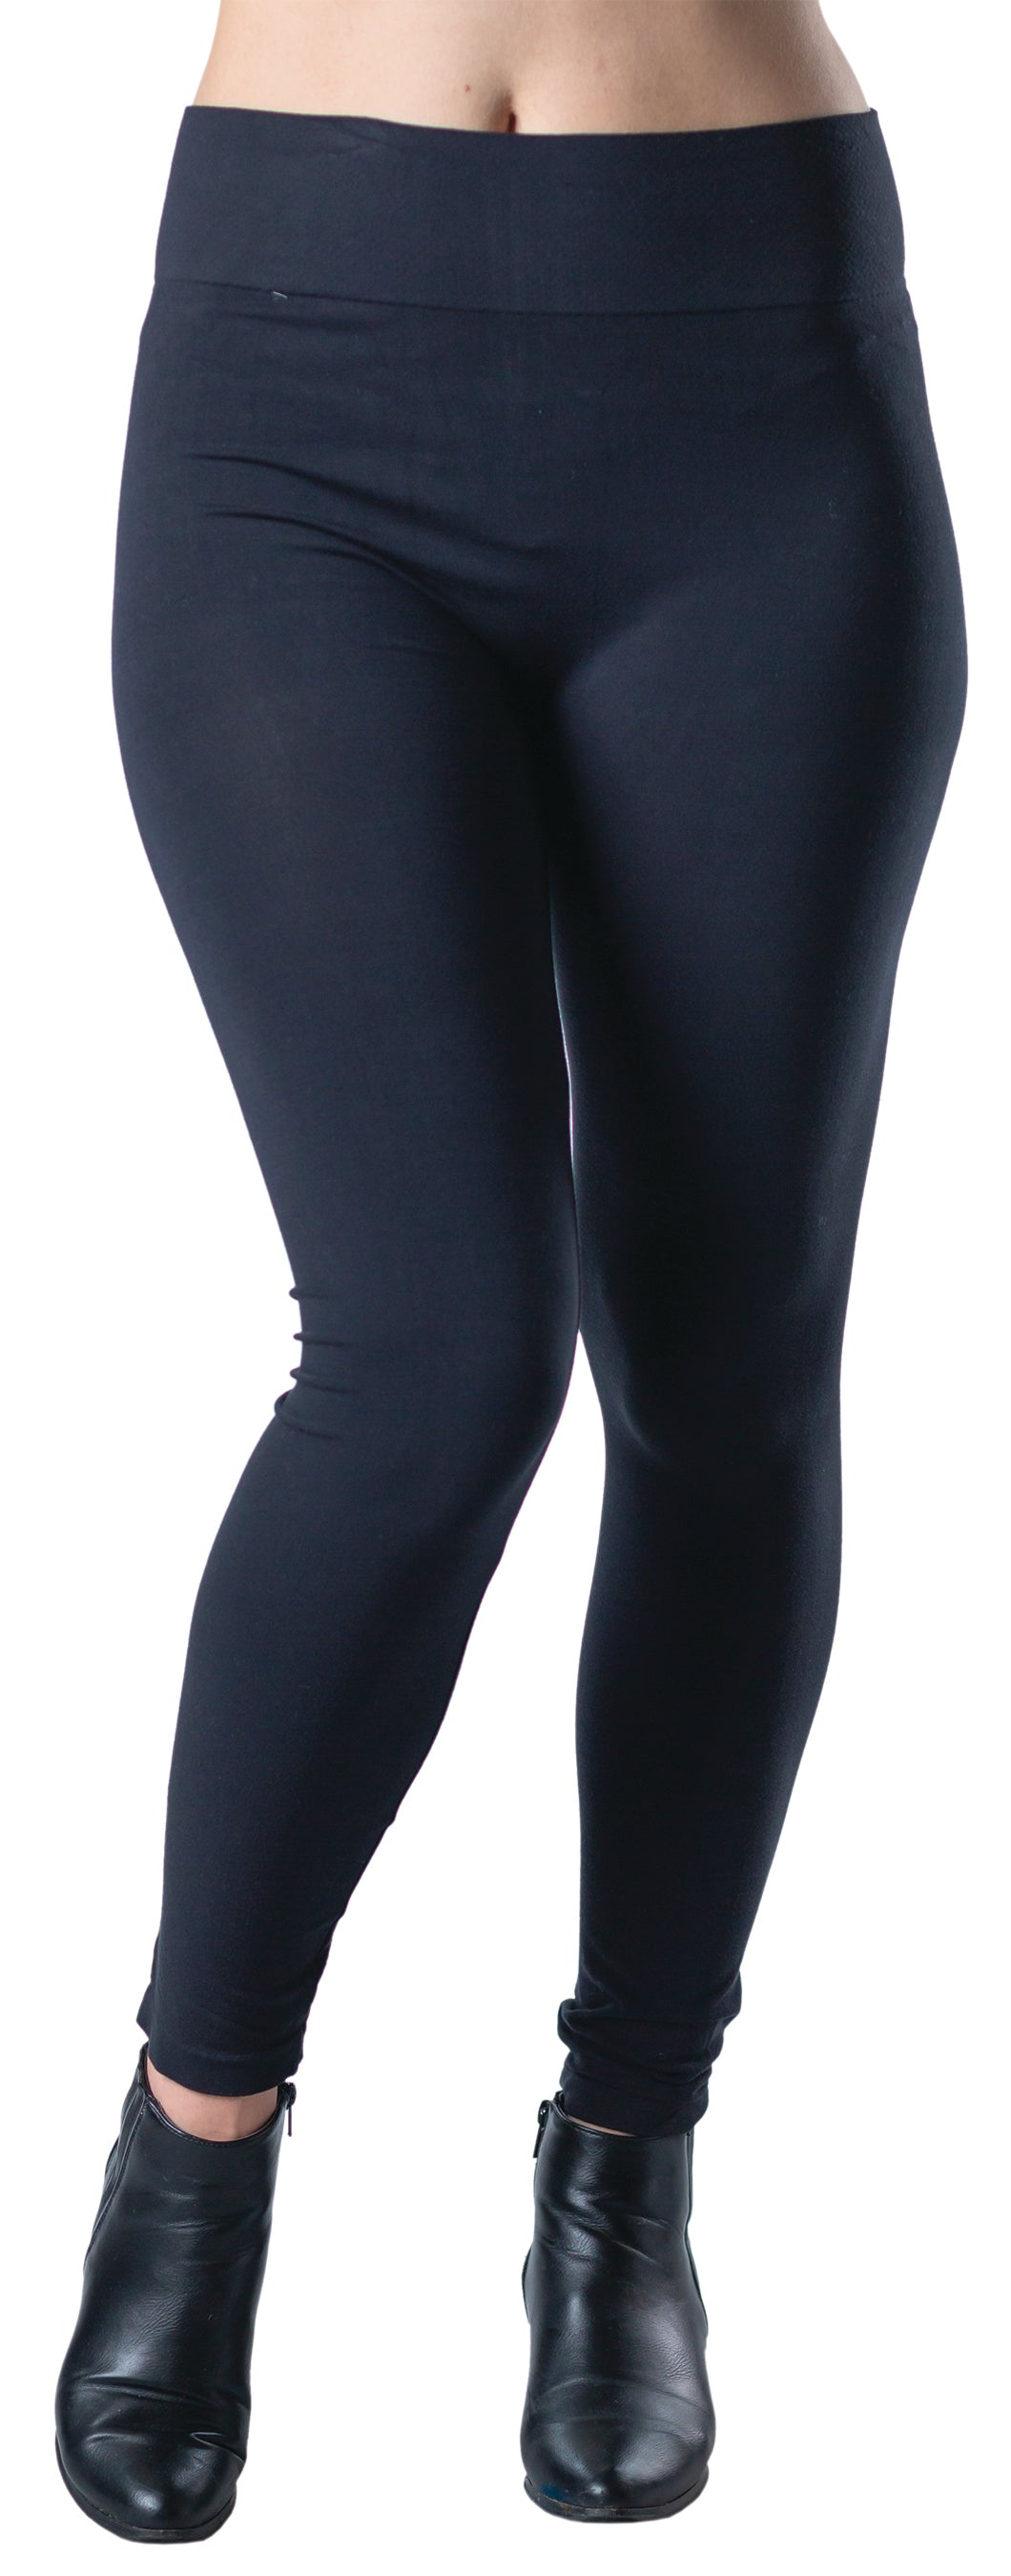 Packaged Bamboo Legging